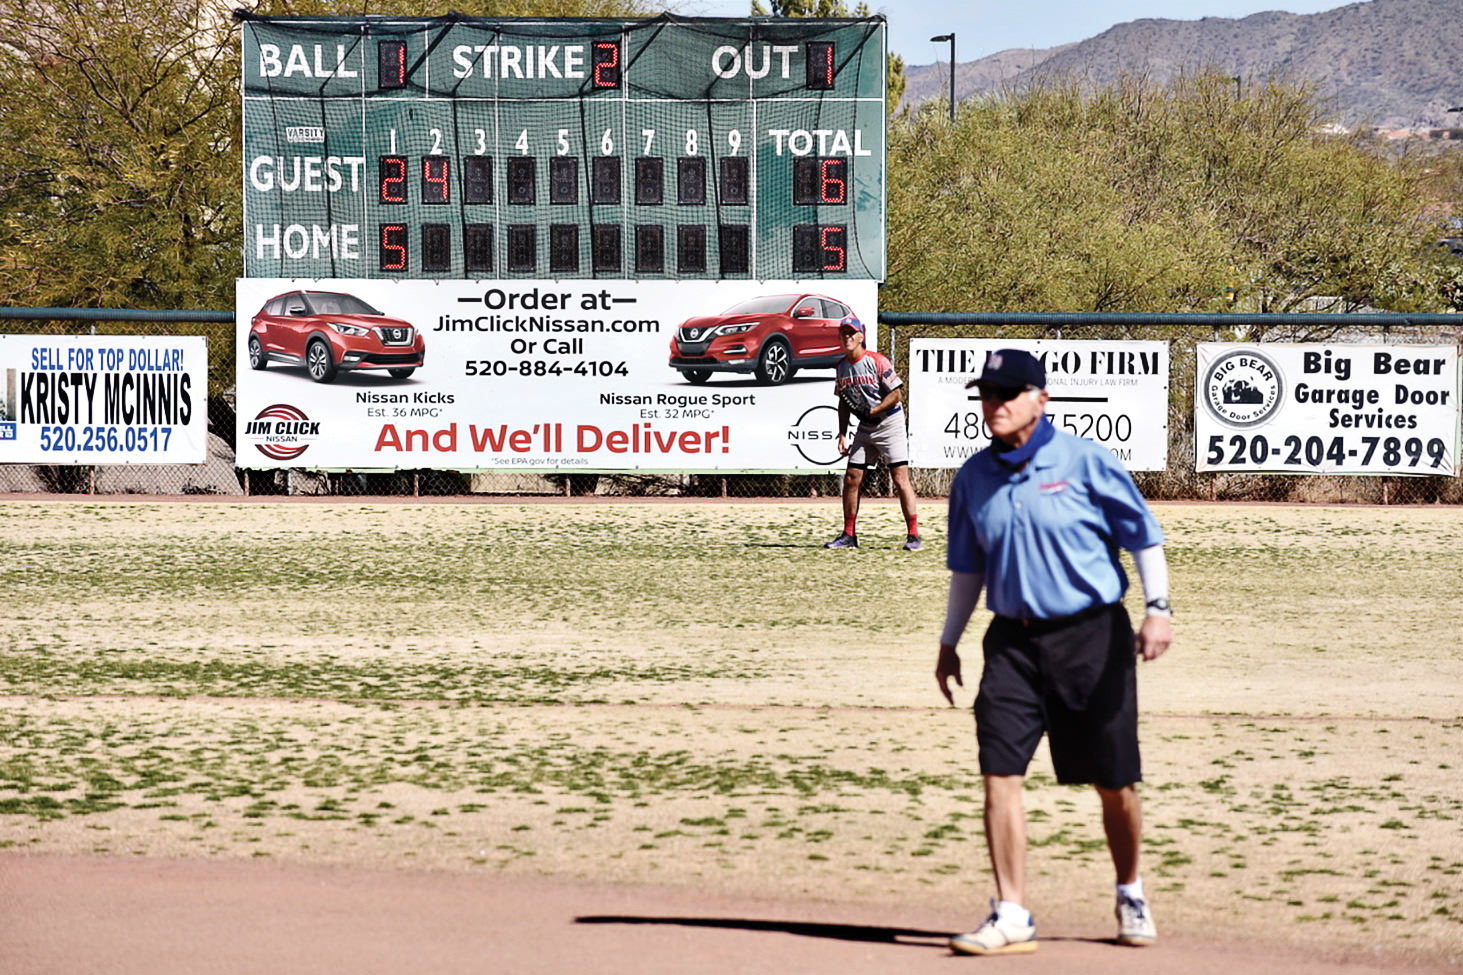 Base umpire Dennis Marchand is in position to make a call at a recent SaddleBrooke Senior Softball game.